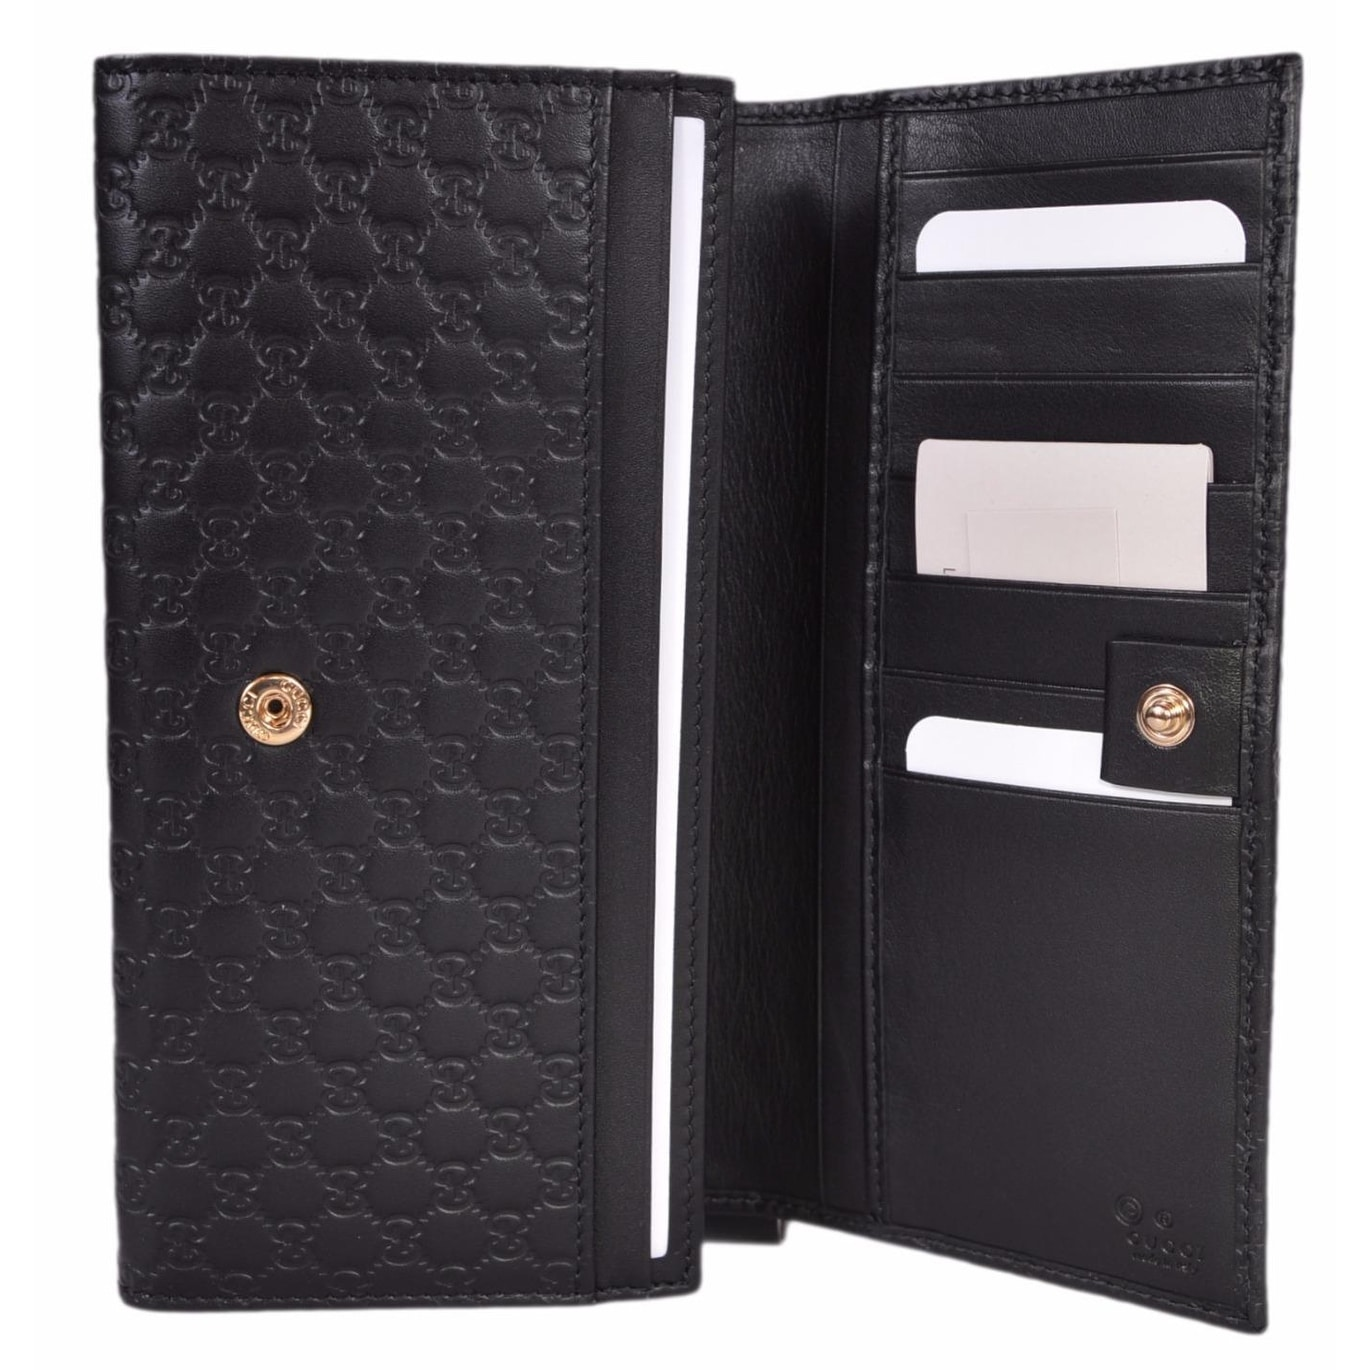 ac868383a4579c Shop Gucci Women's 449396 Black Leather Micro GG Continental Bifold Wallet  - 7.5